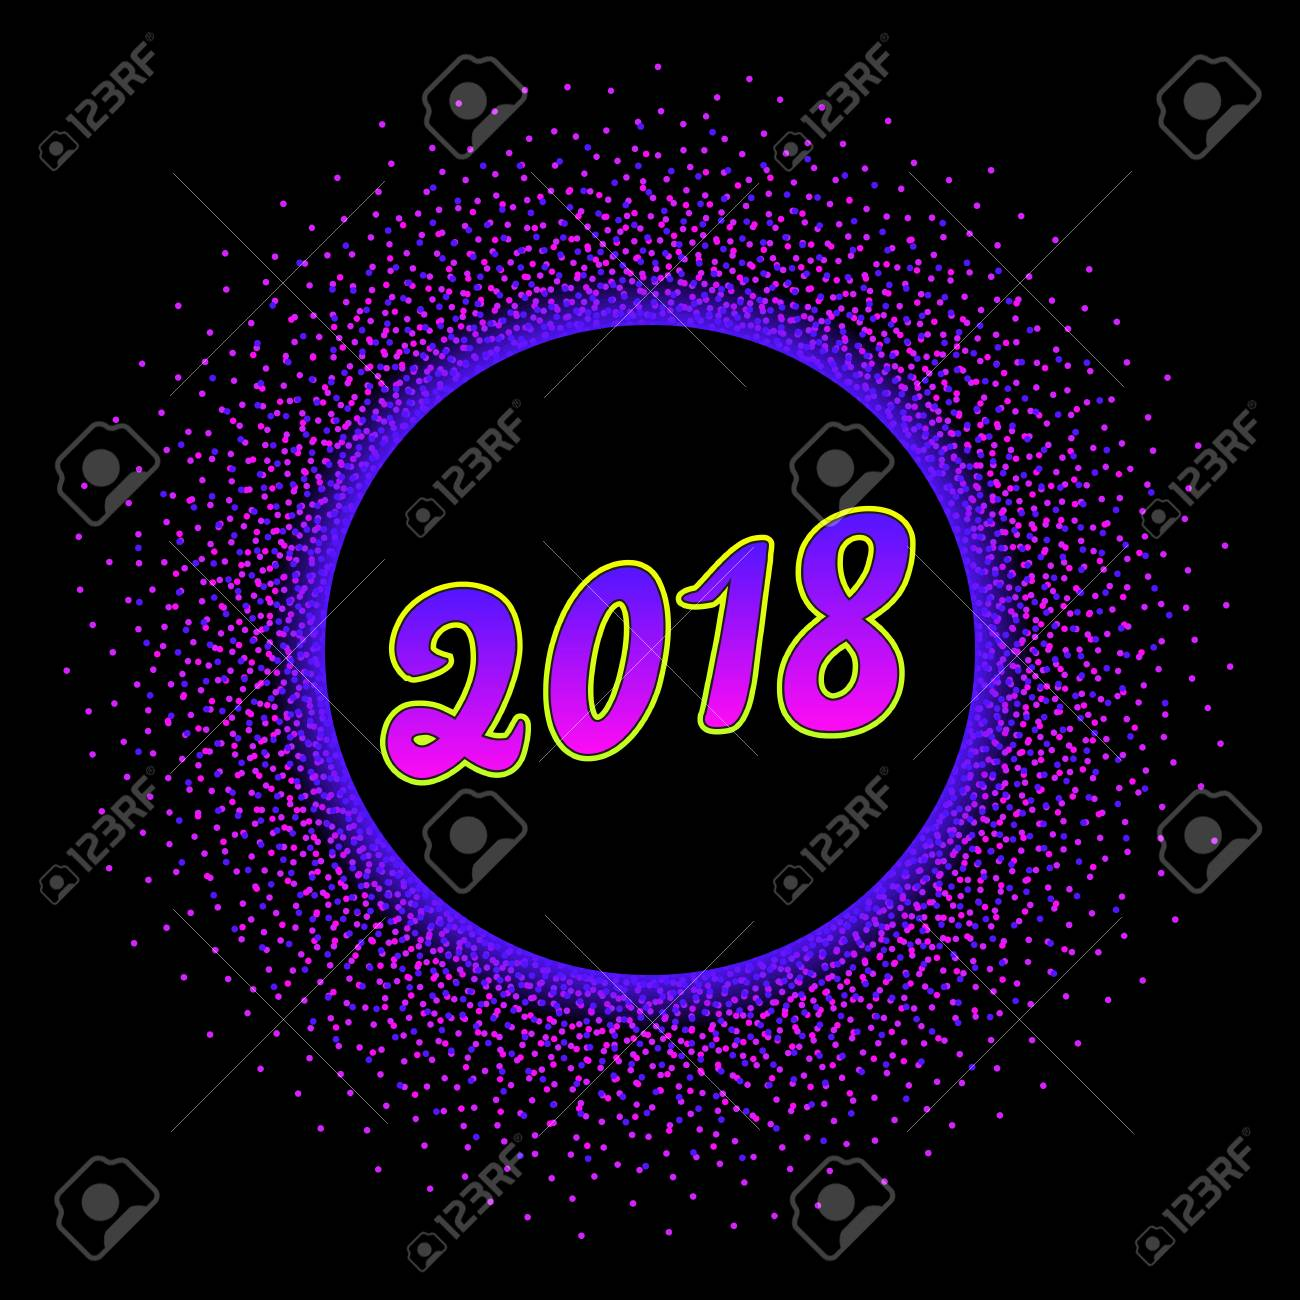 happy new year 2018 greeting card design template with bright text number in glowing neon circle